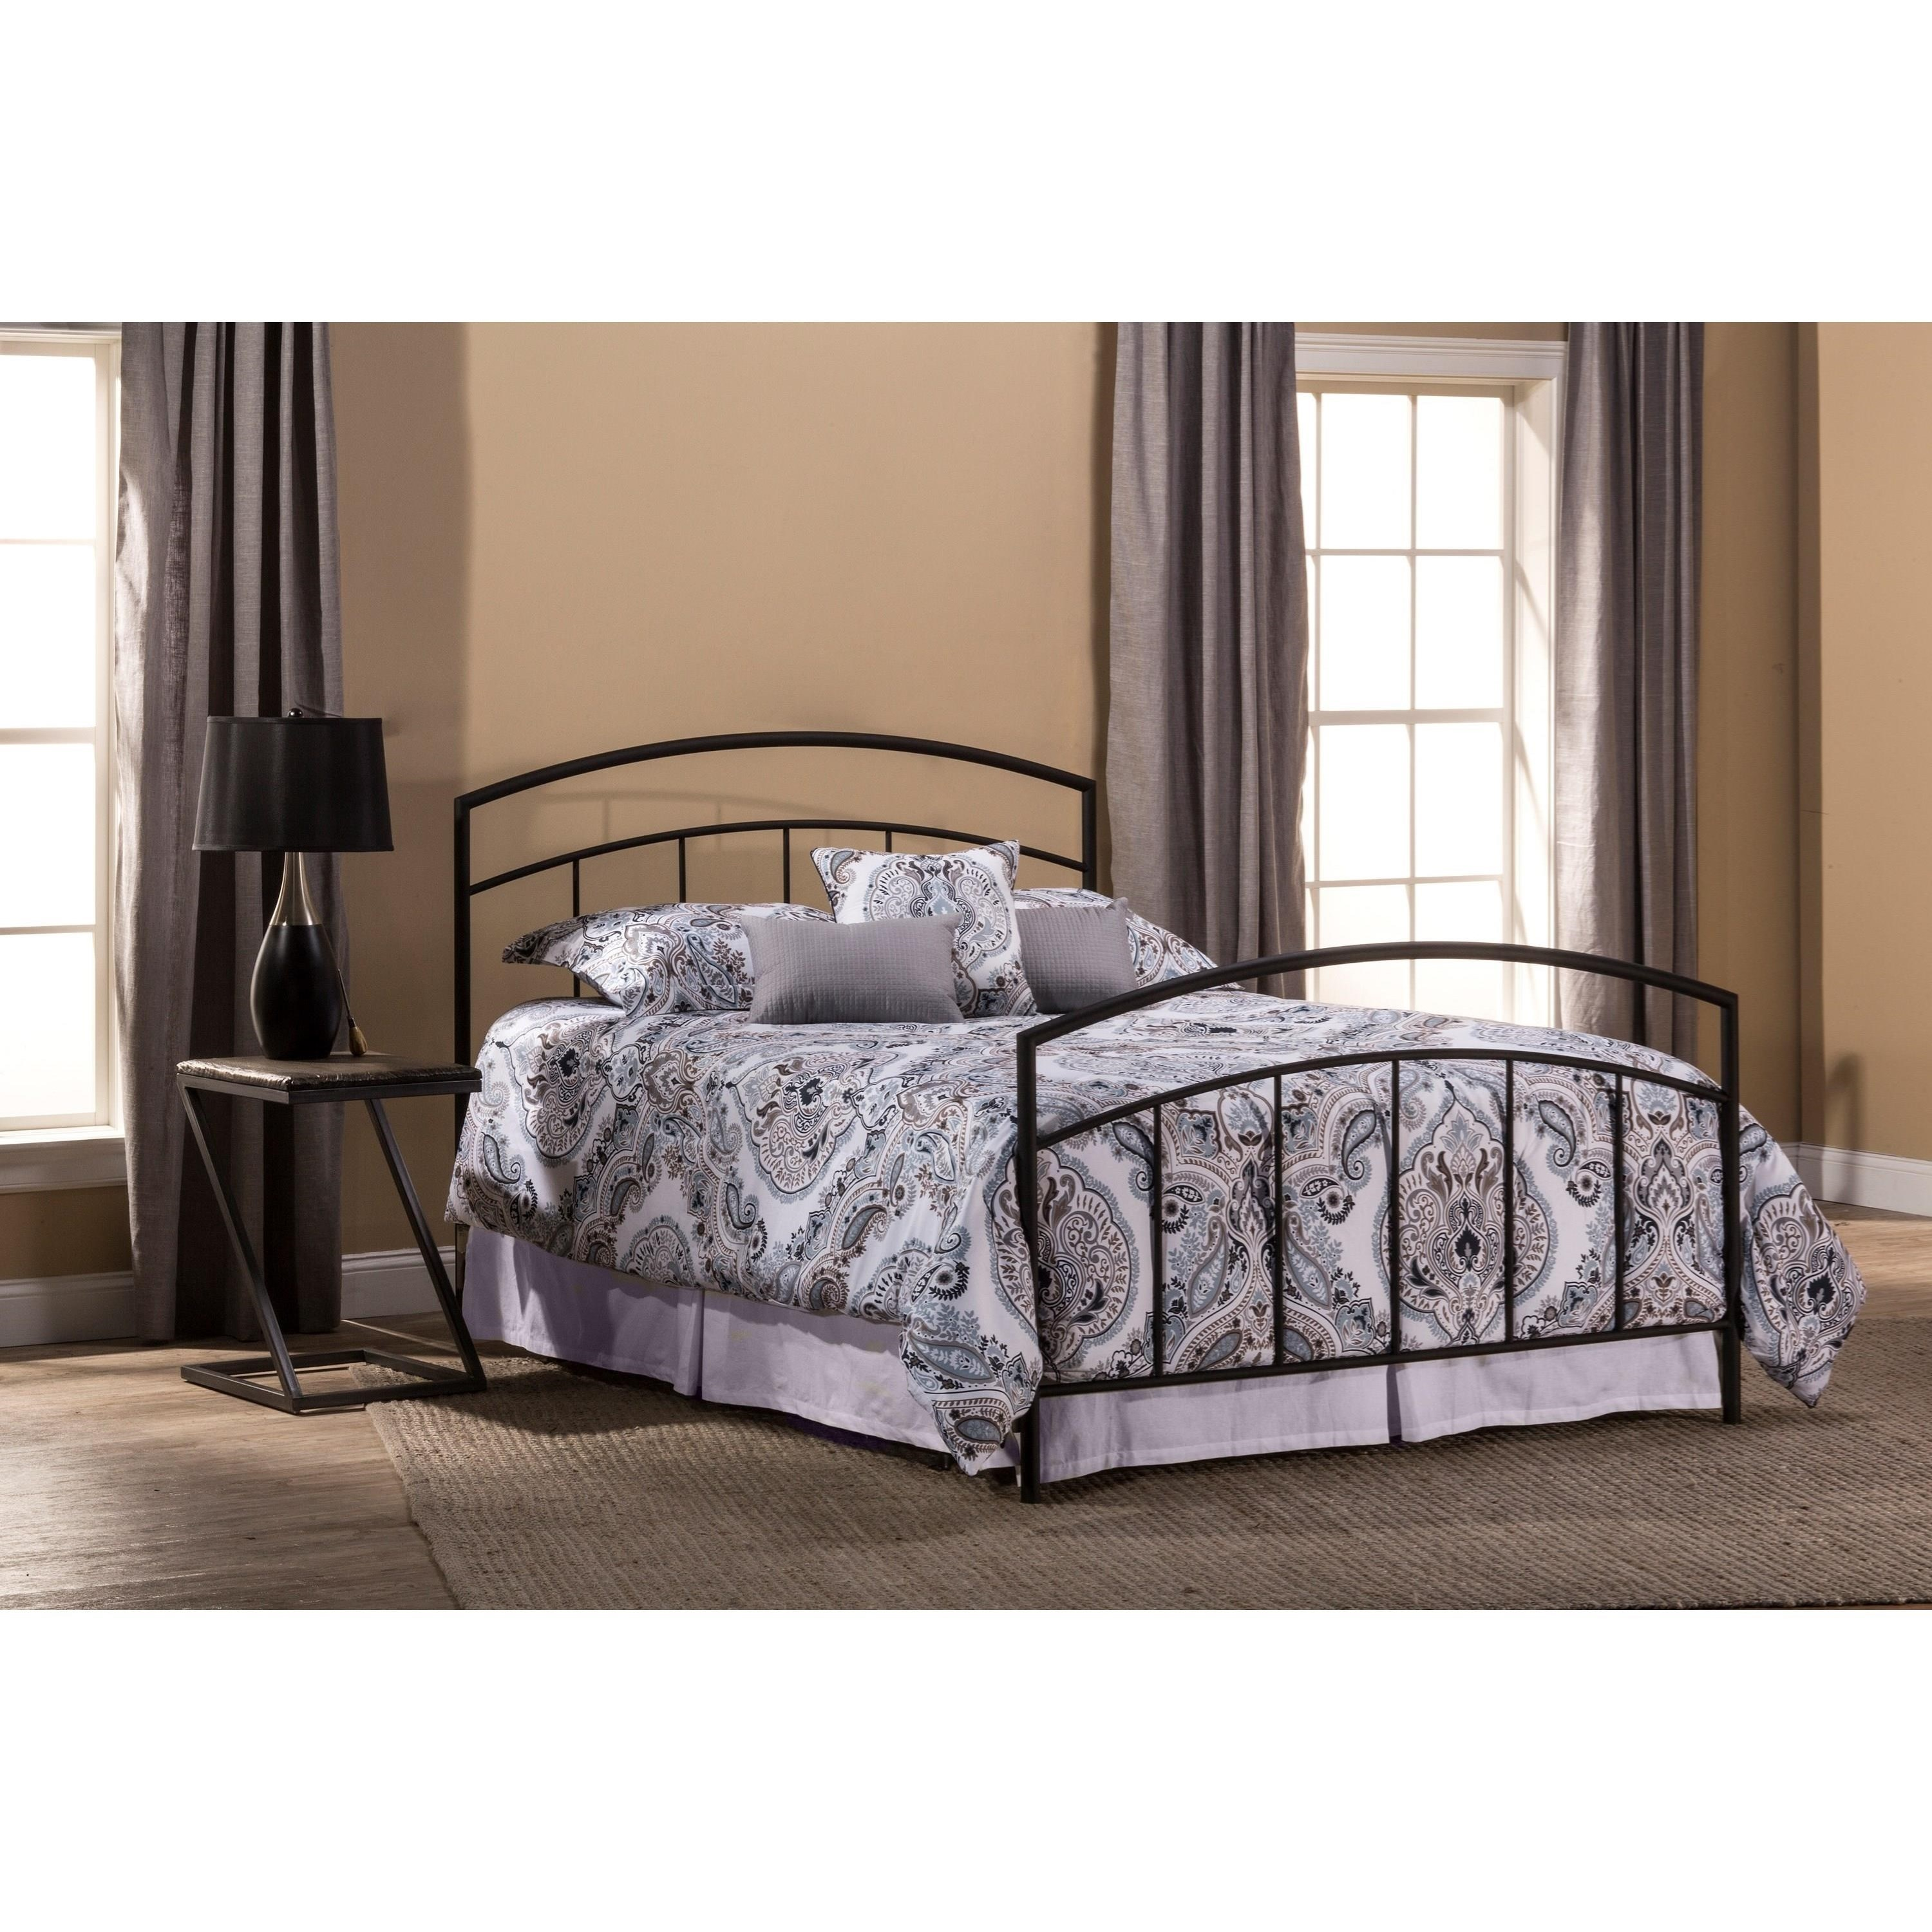 Metal Beds Queen Bed Set with Rails by Hillsdale at Steger's Furniture